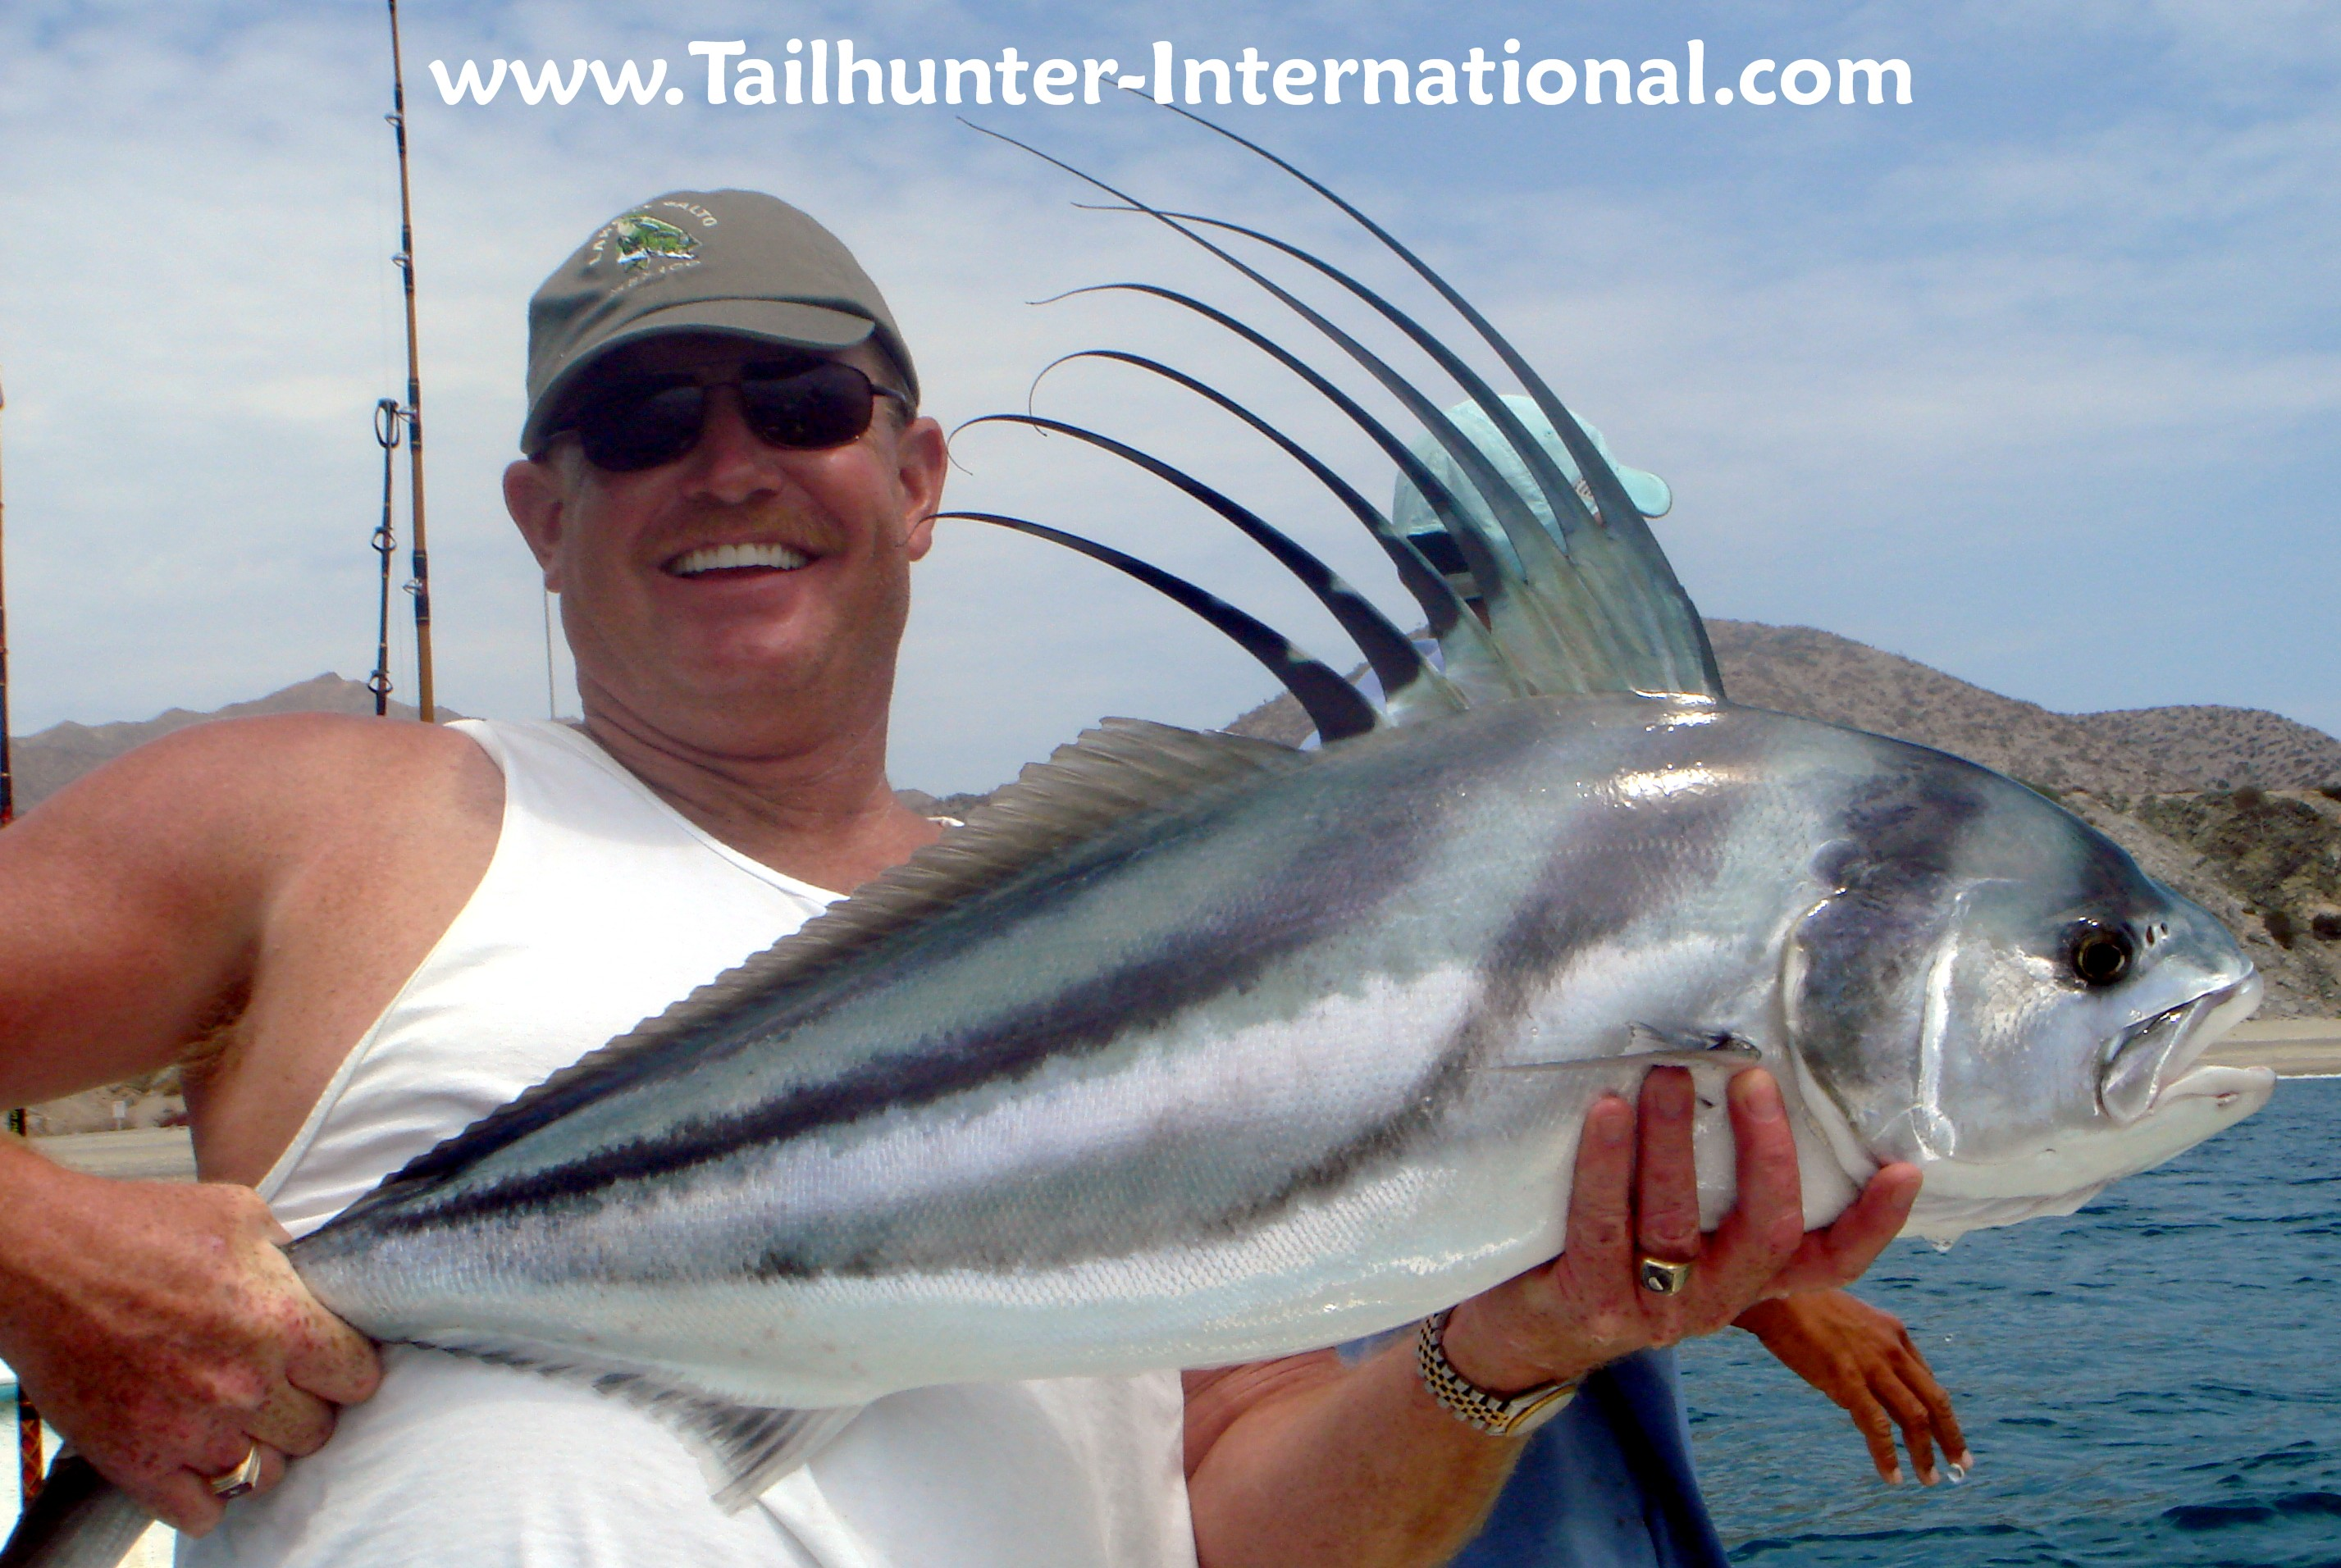 La paz las arenas fishing report from tailhunter for Fishing reports washington